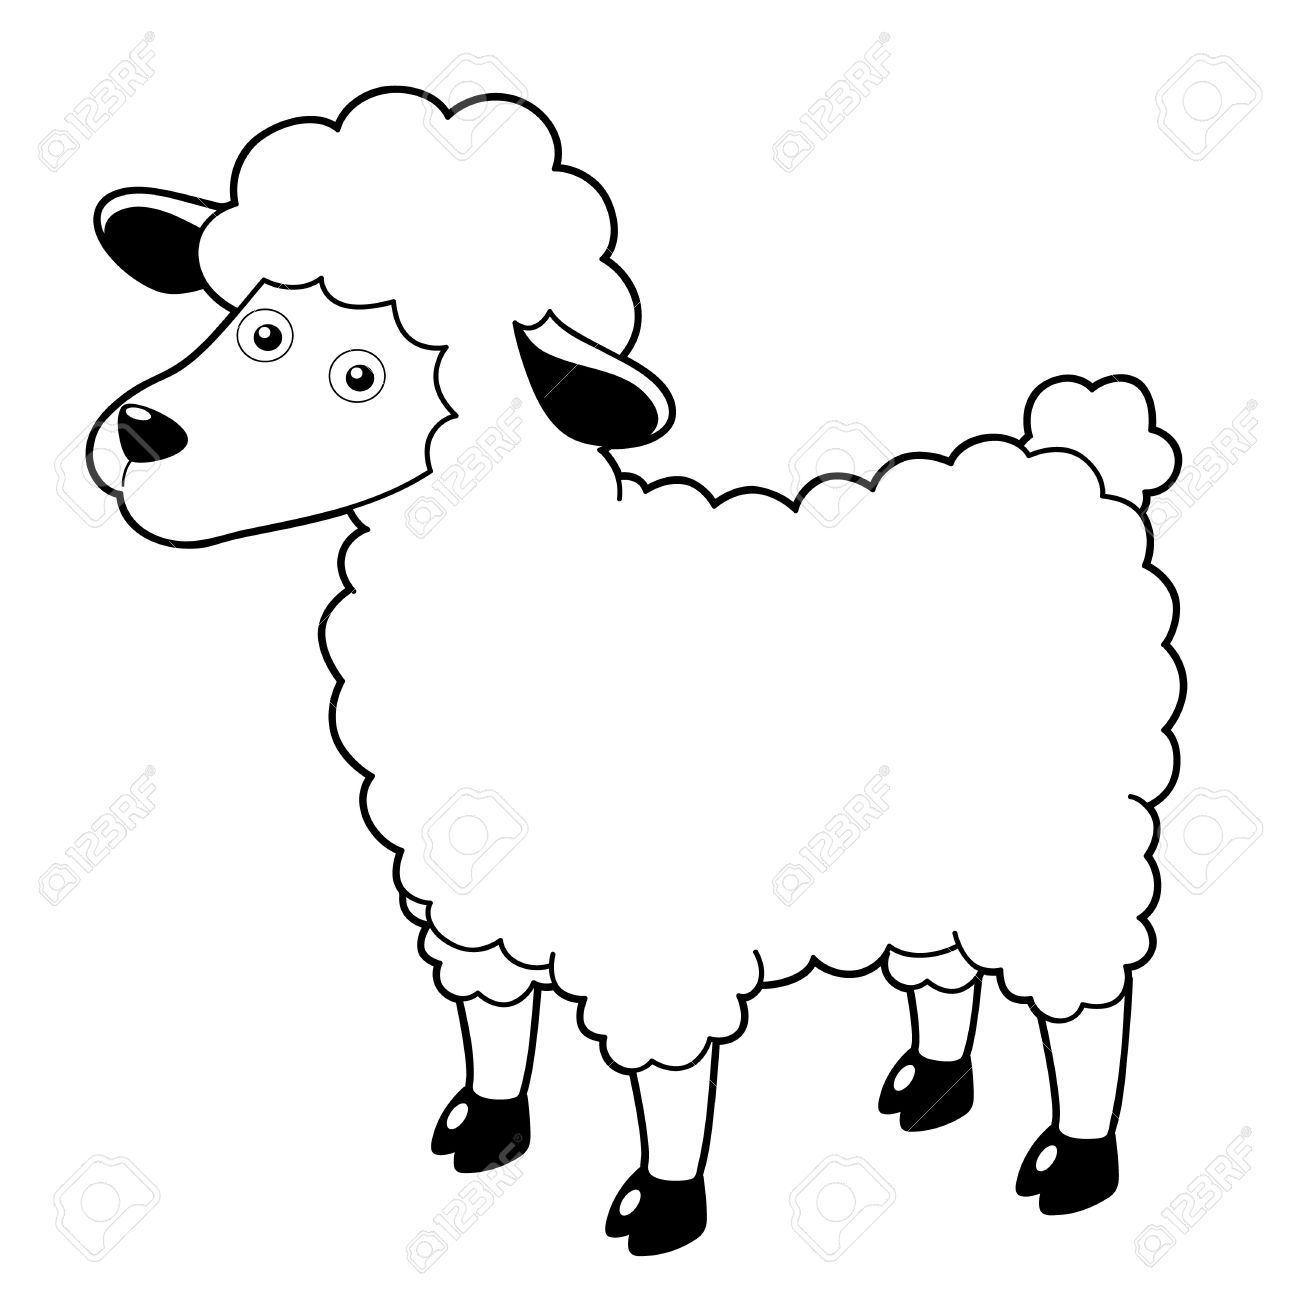 Ewe cartoon clipart black and white vector Sheep black and white black and white sheep picturespilation and ... vector